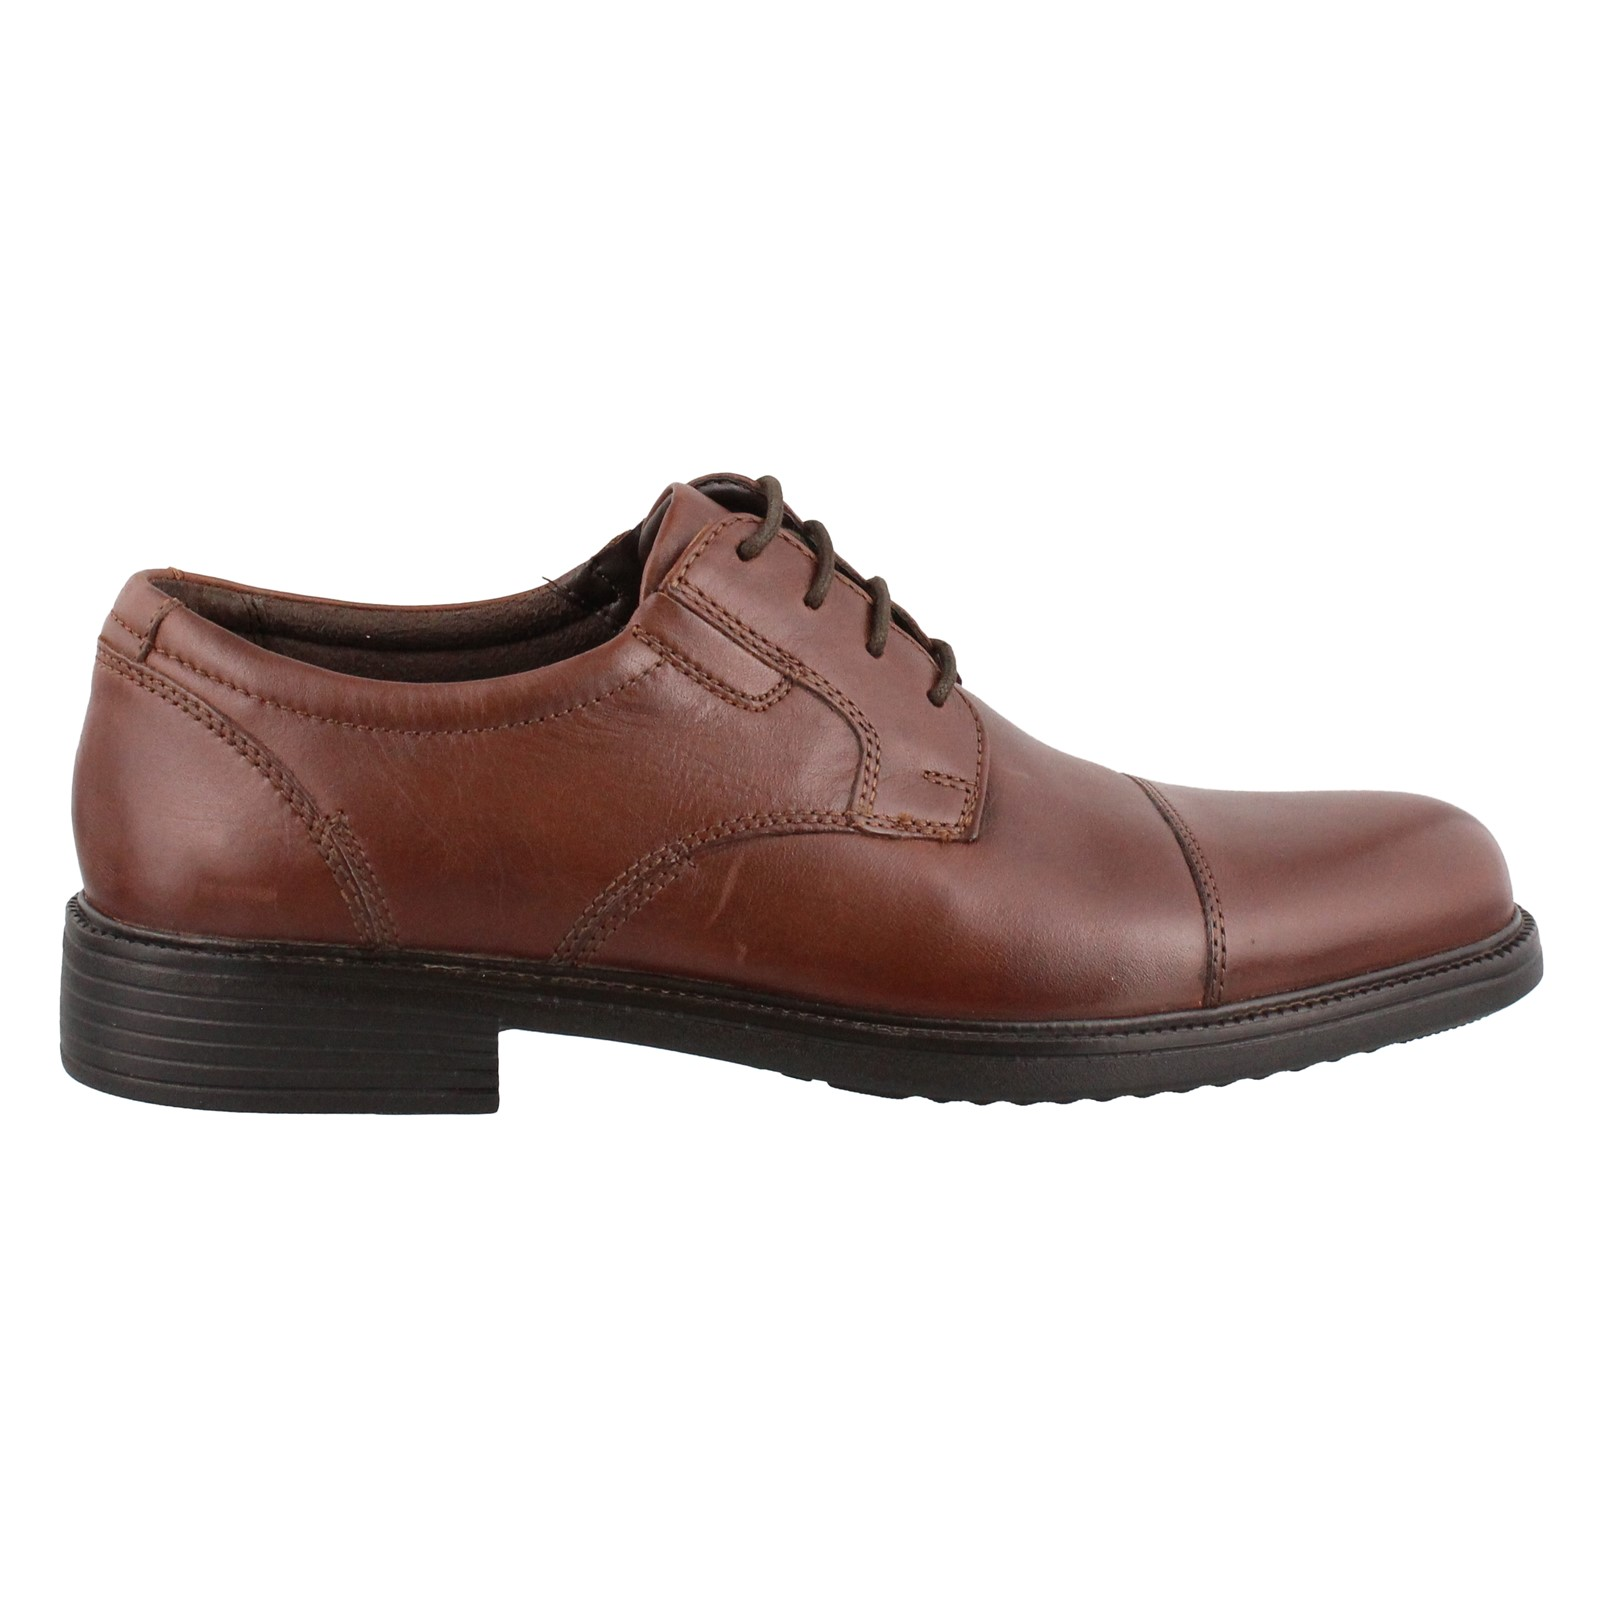 Men's Bostonian, Bardwell Limit Lace Up Shoe